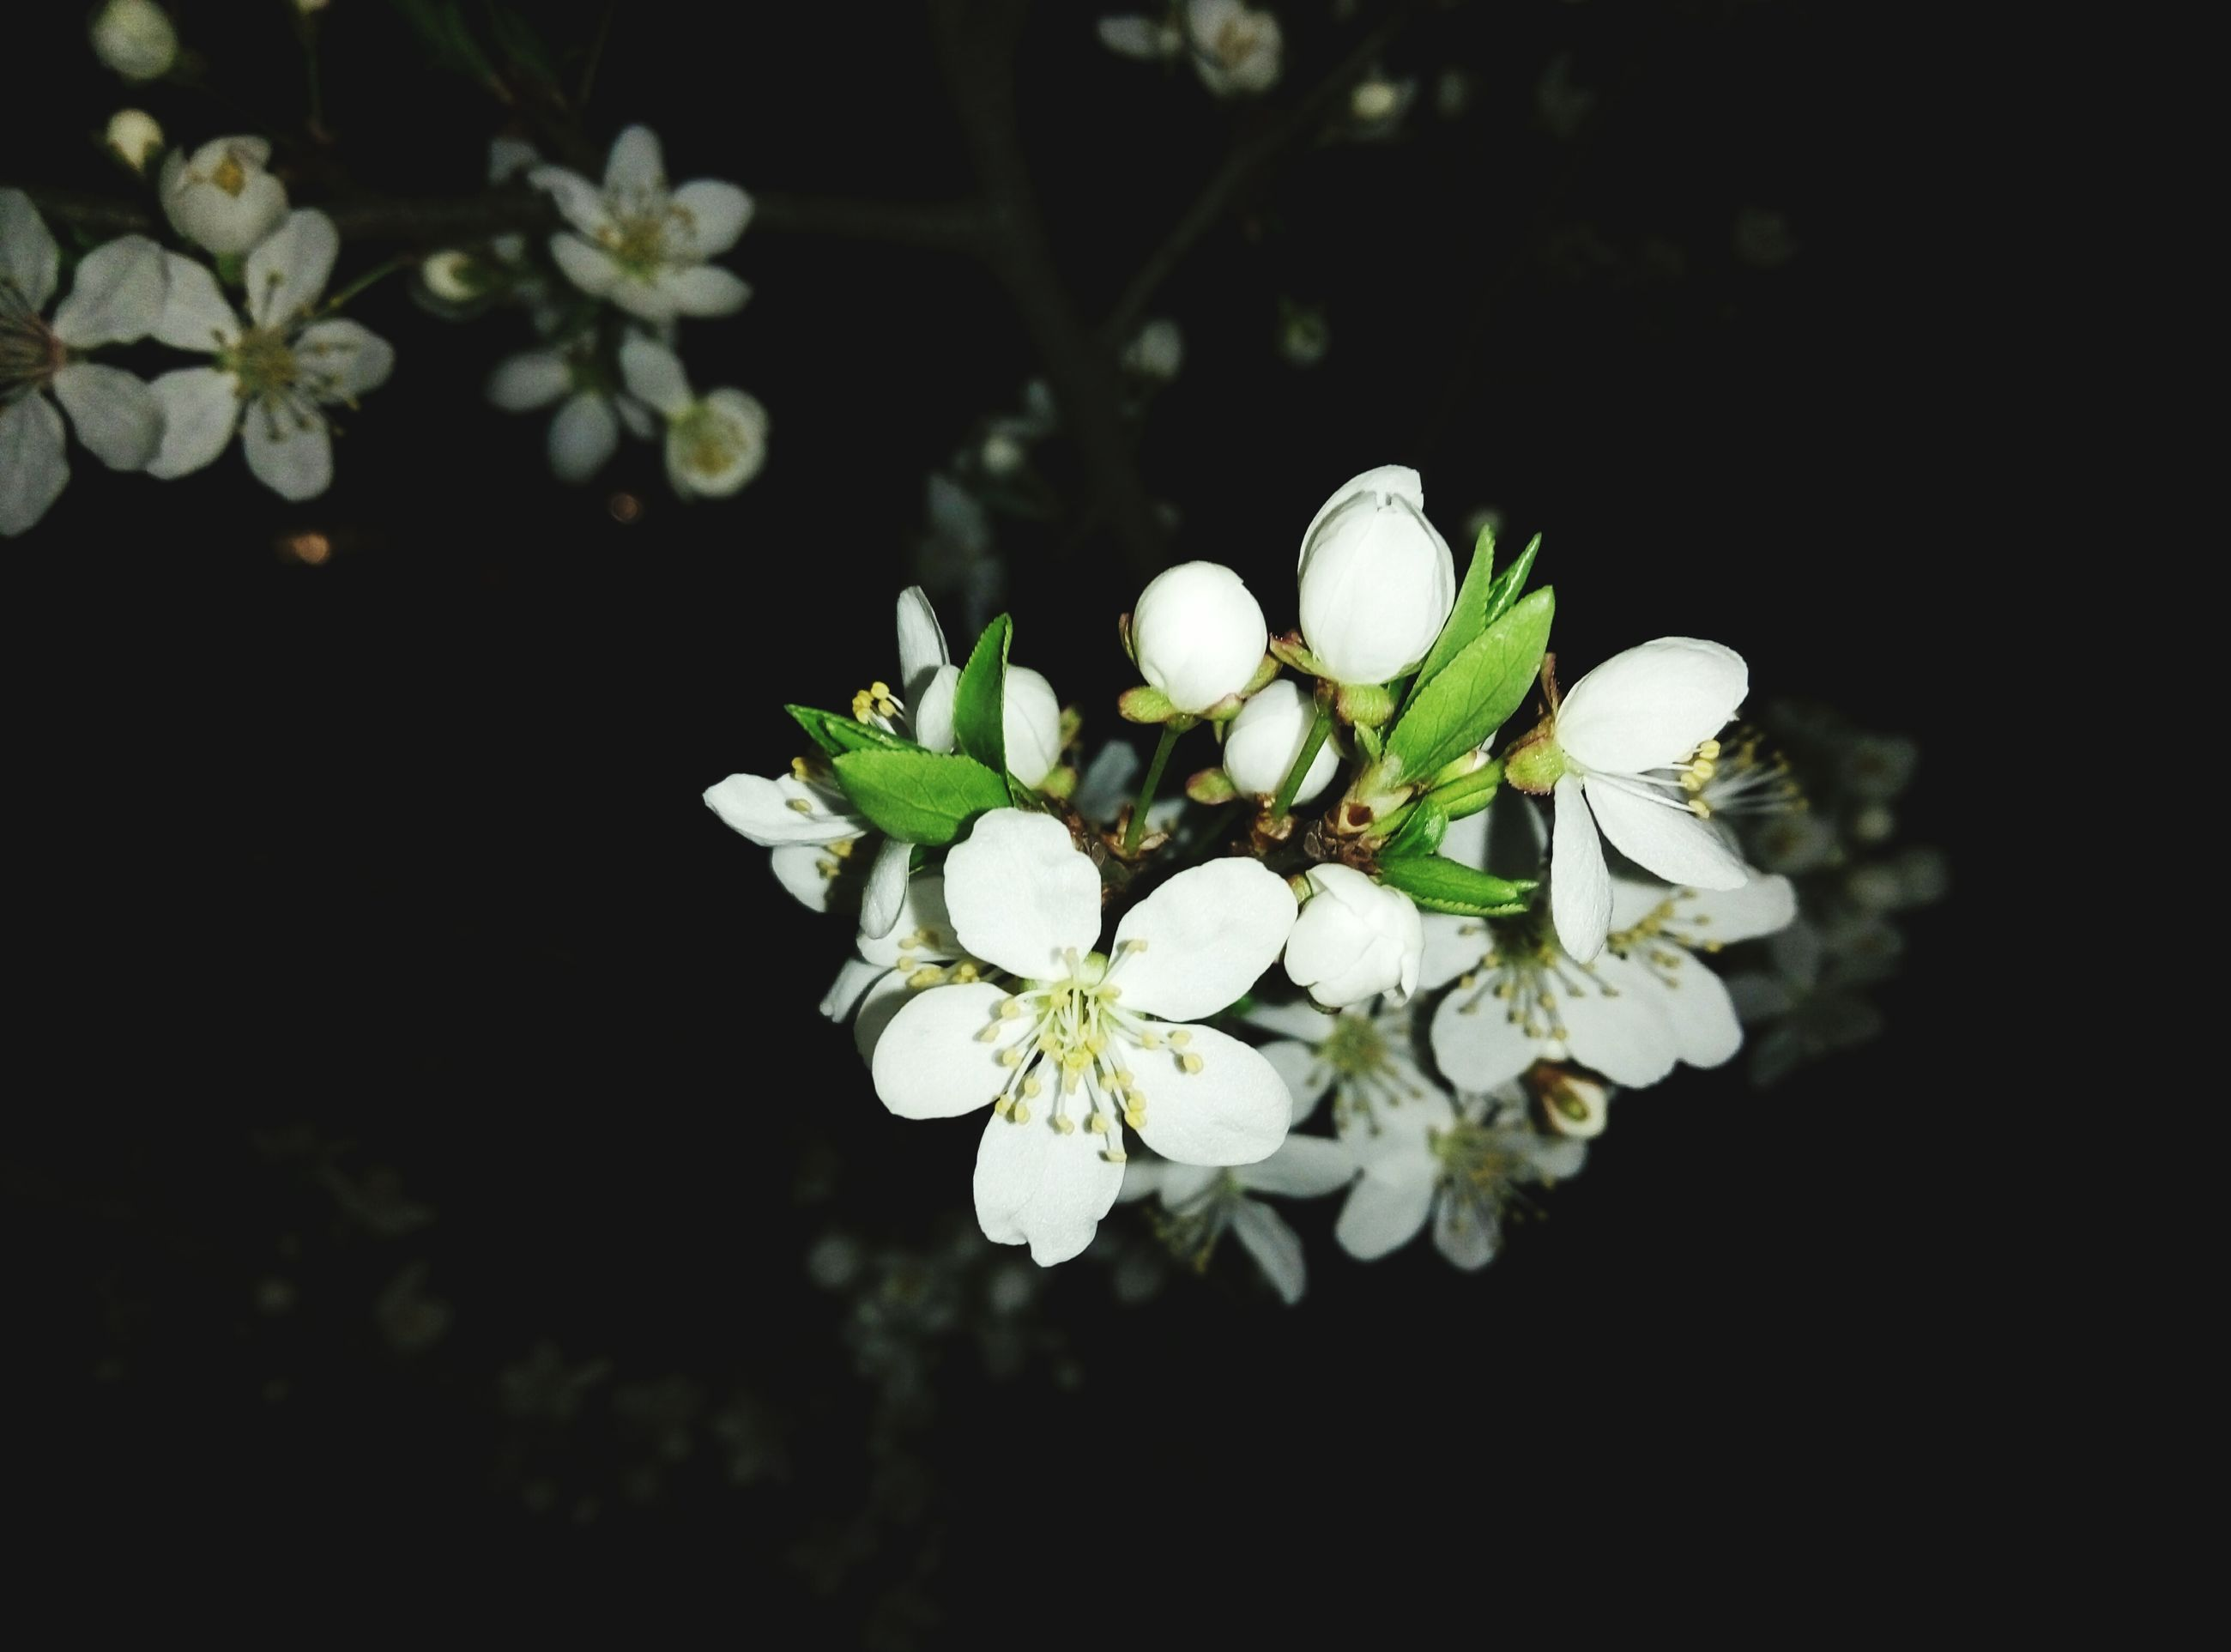 flower, white color, freshness, fragility, petal, growth, flower head, beauty in nature, close-up, nature, blossom, white, blooming, focus on foreground, in bloom, plant, botany, stamen, stem, springtime